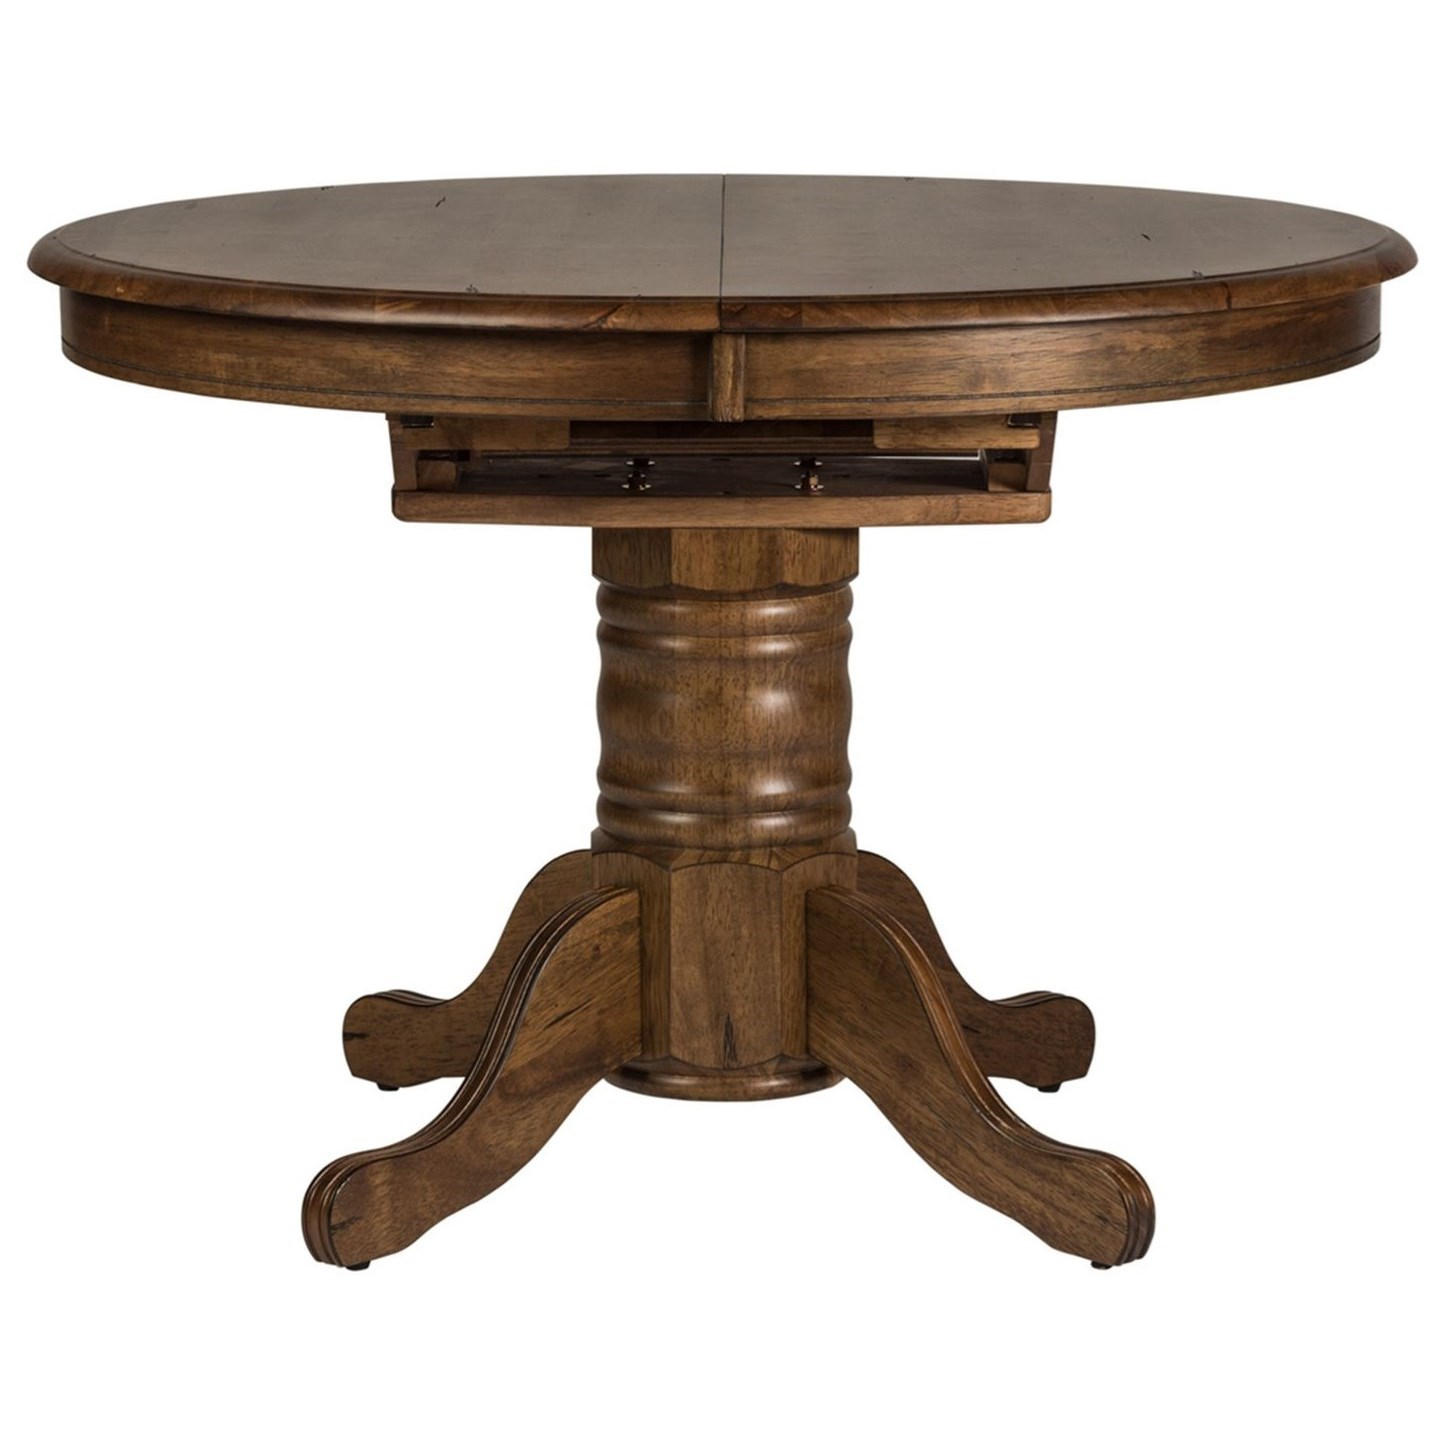 Carolina Crossing Oval Pedestal Dining Table by Liberty Furniture at Darvin Furniture